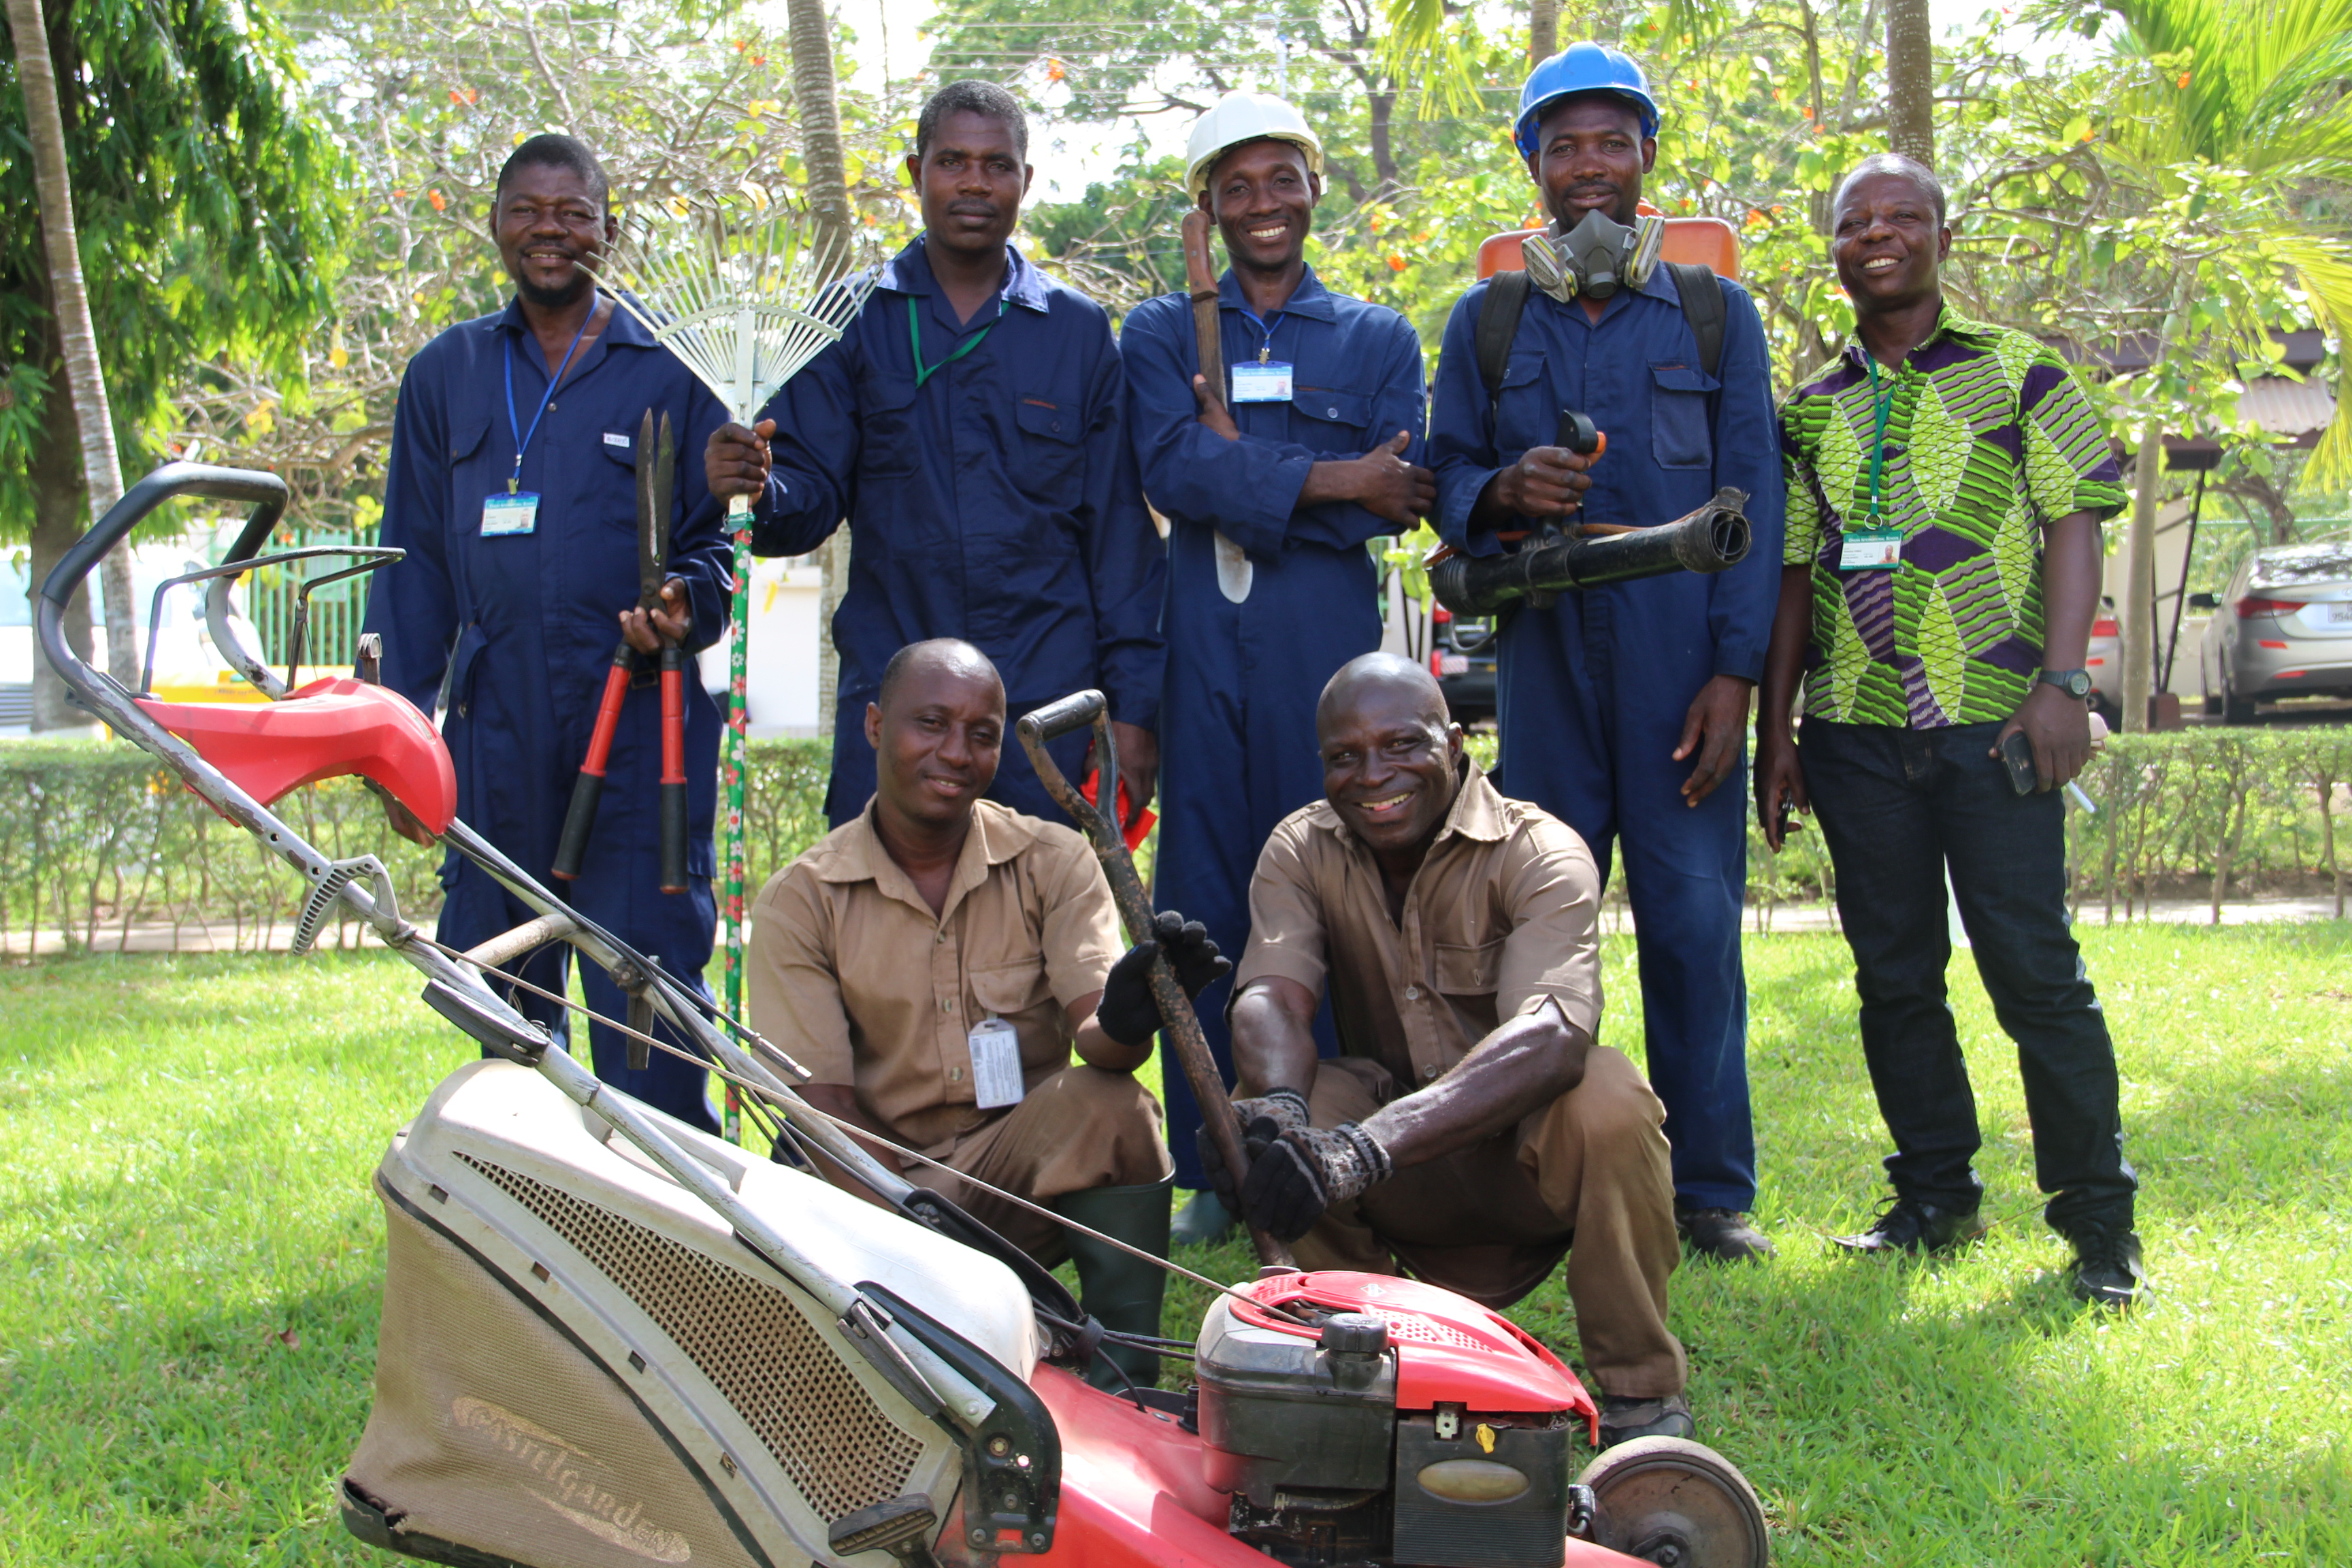 Ayekoo to our amazing Gardeners